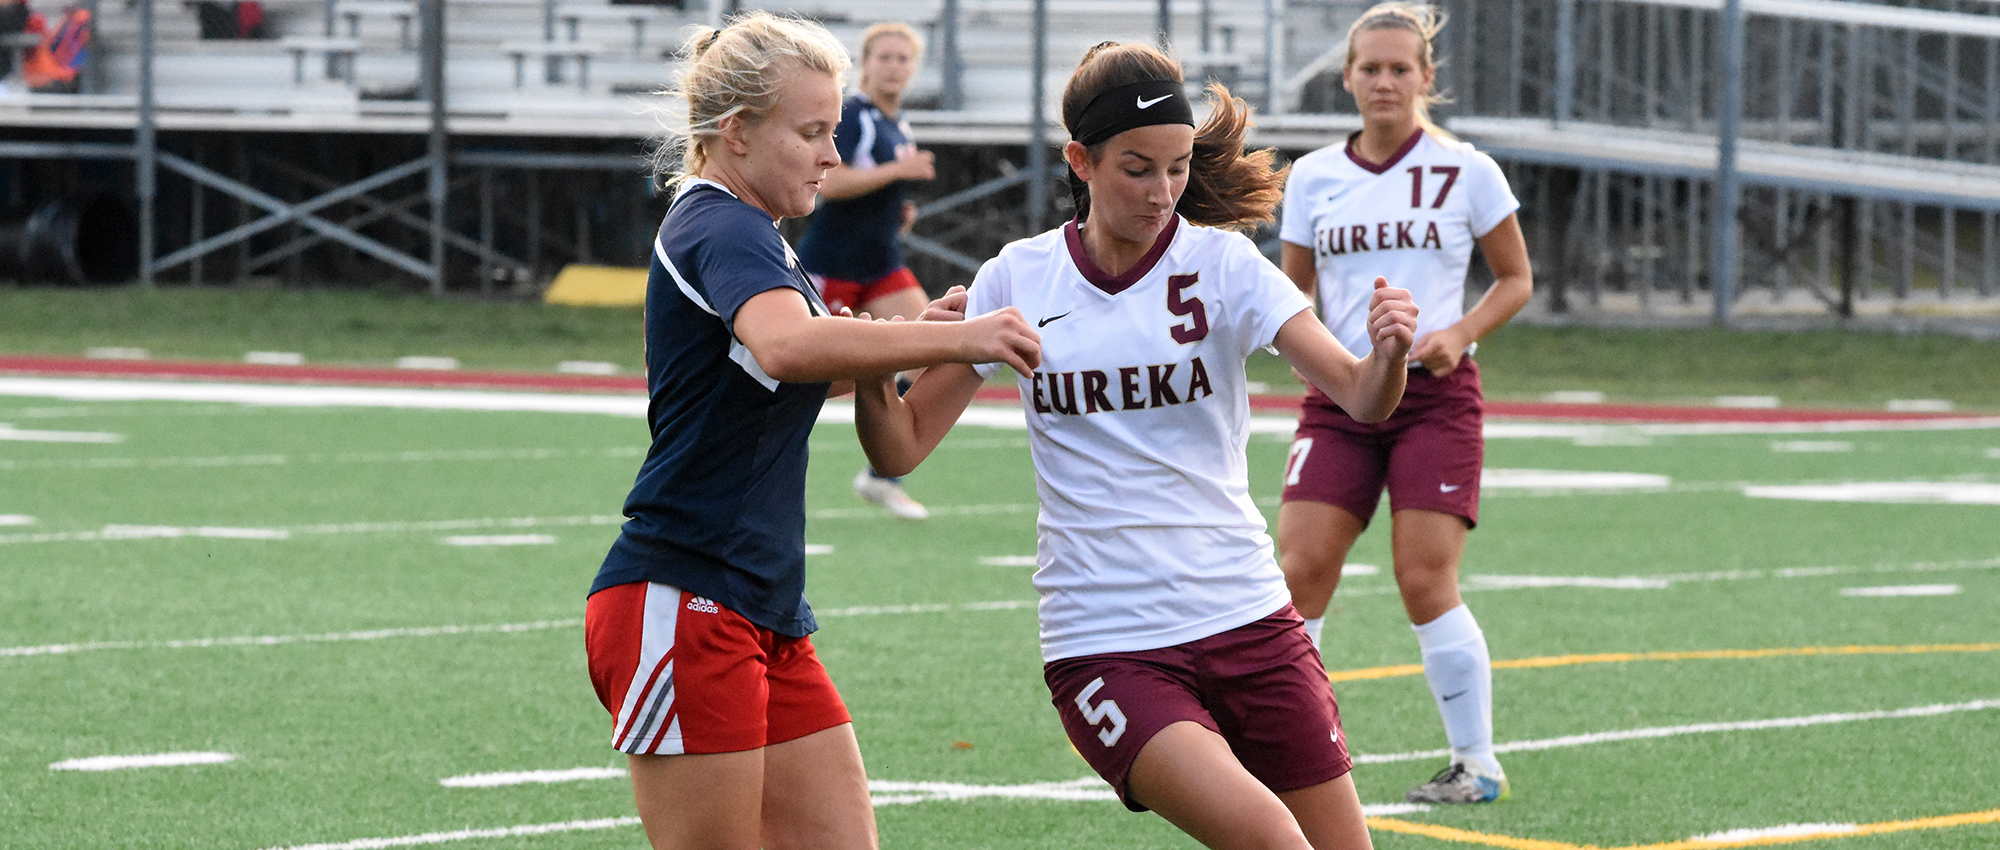 Webster Takes Down Eureka Saturday at Traister